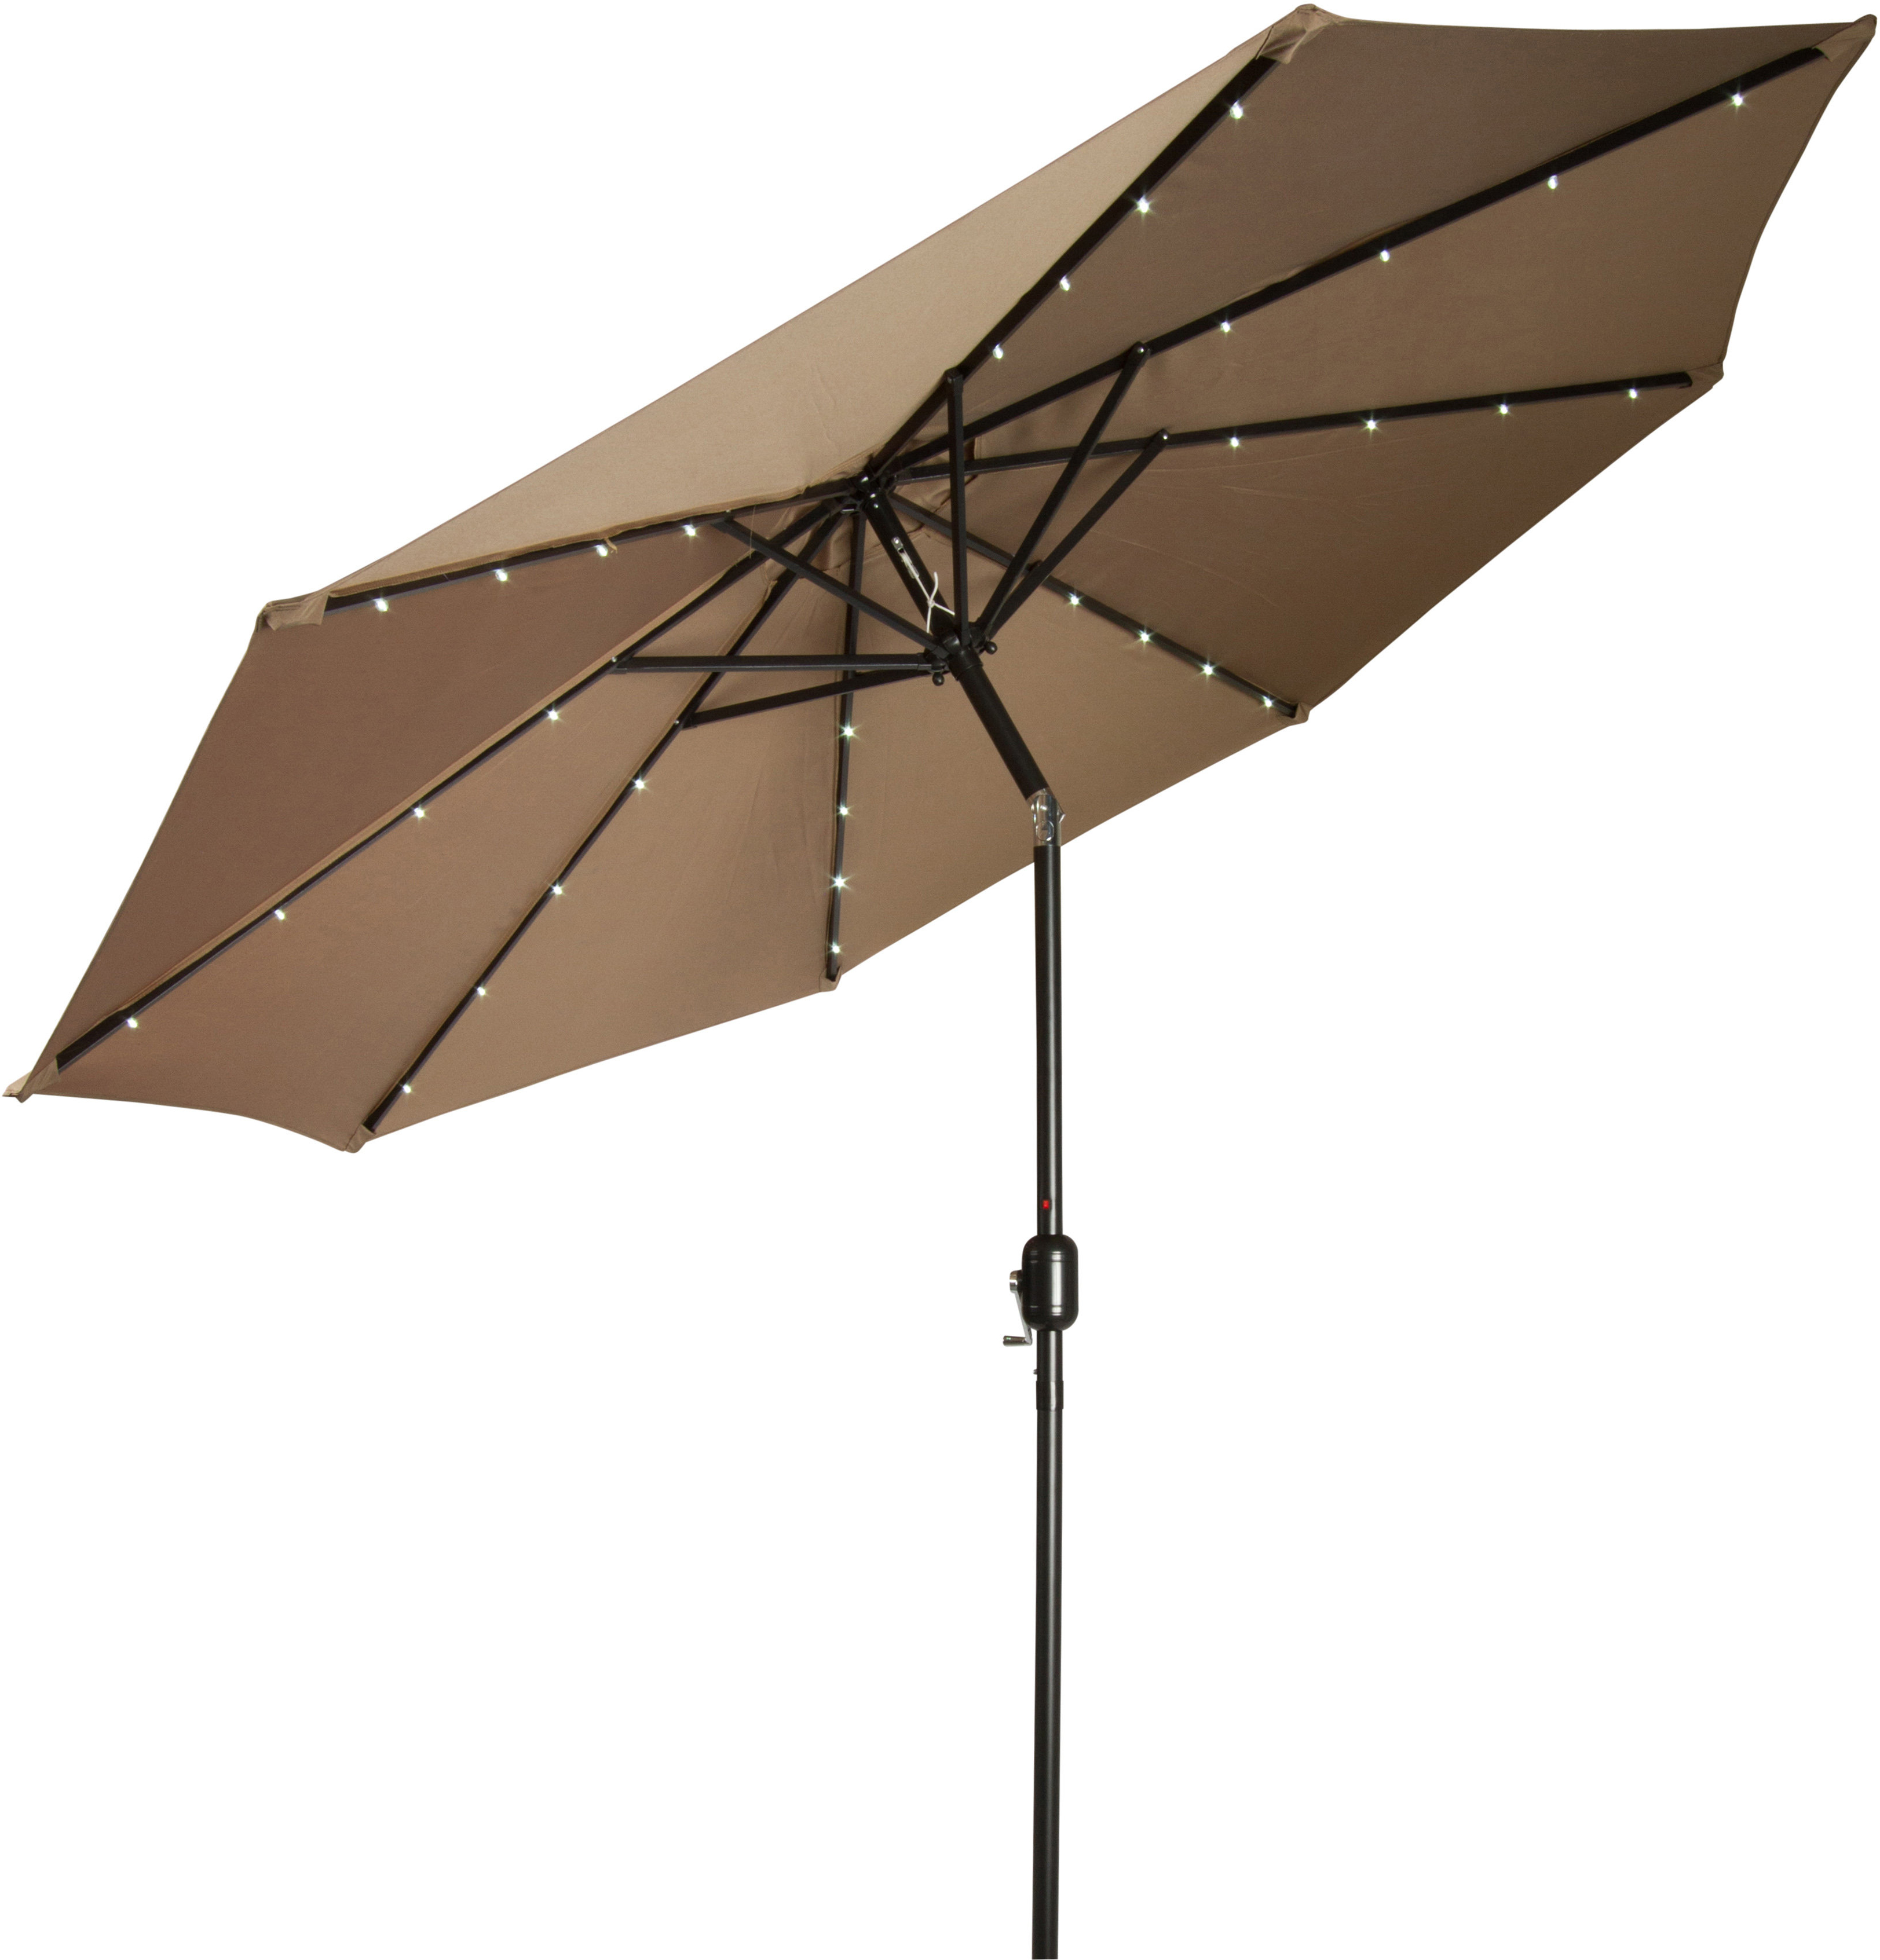 Annabelle Market Umbrellas Intended For Latest Woll 9' Lighted Market Umbrella (View 5 of 20)